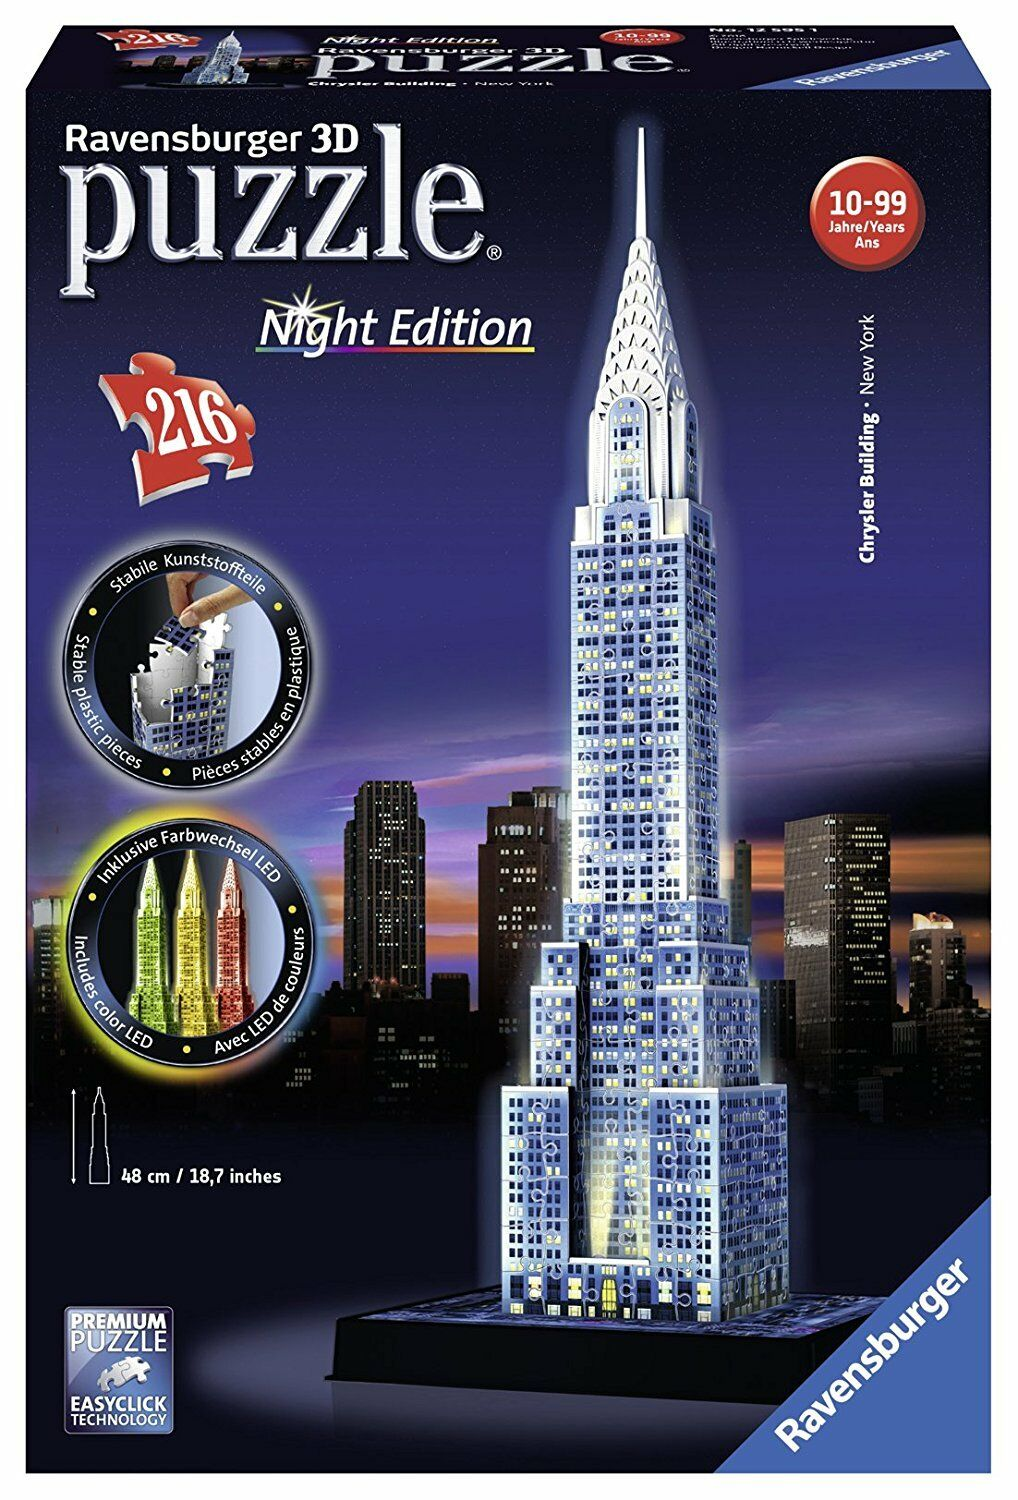 RAVENSBURGER CHRYSLER BUILDING NIGHT EDITION 3D PUZZLE 216PC - NEW & SEALED